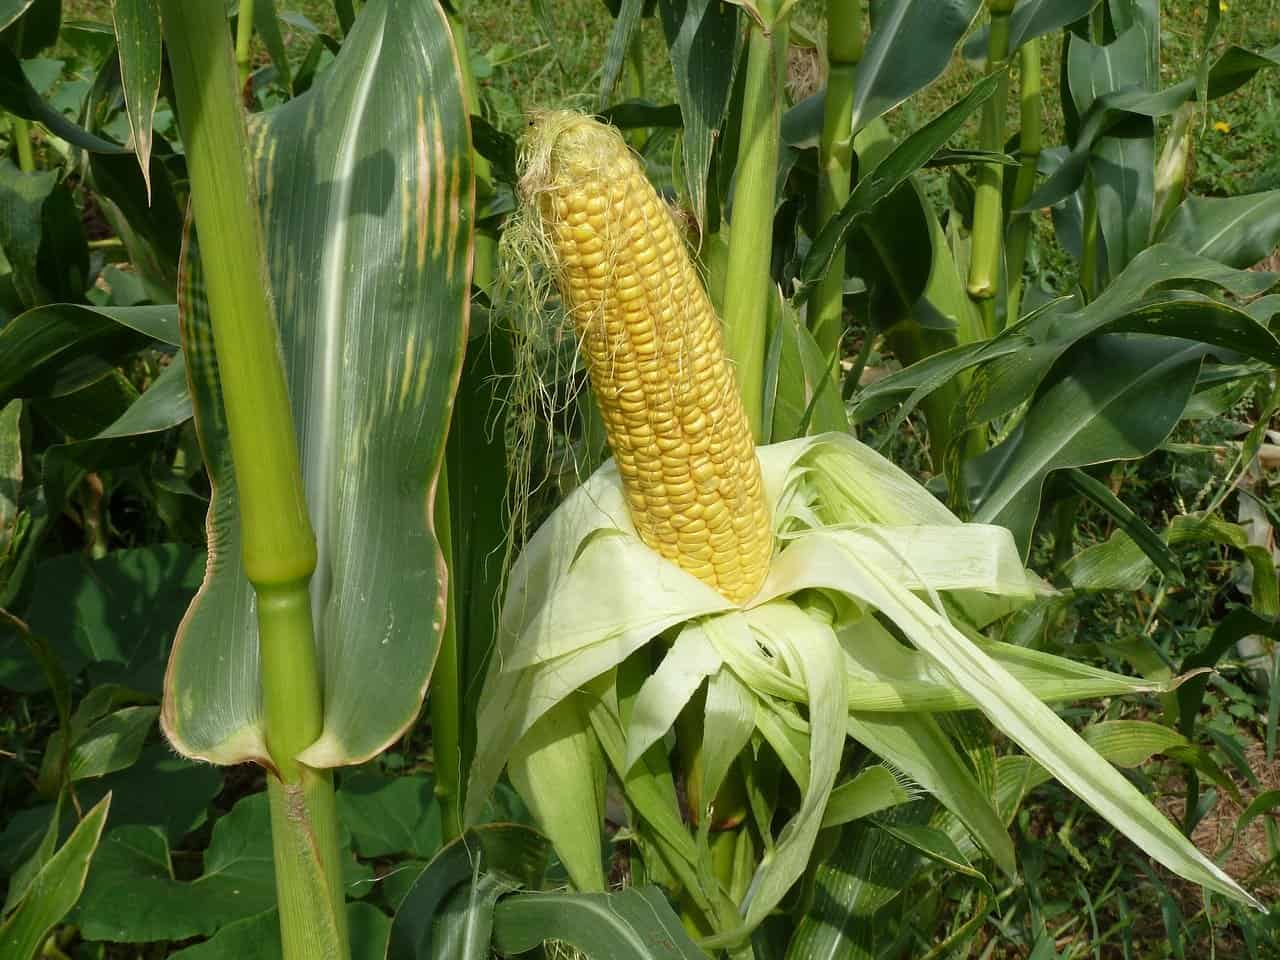 Grow Corn in Square Foot Gardening